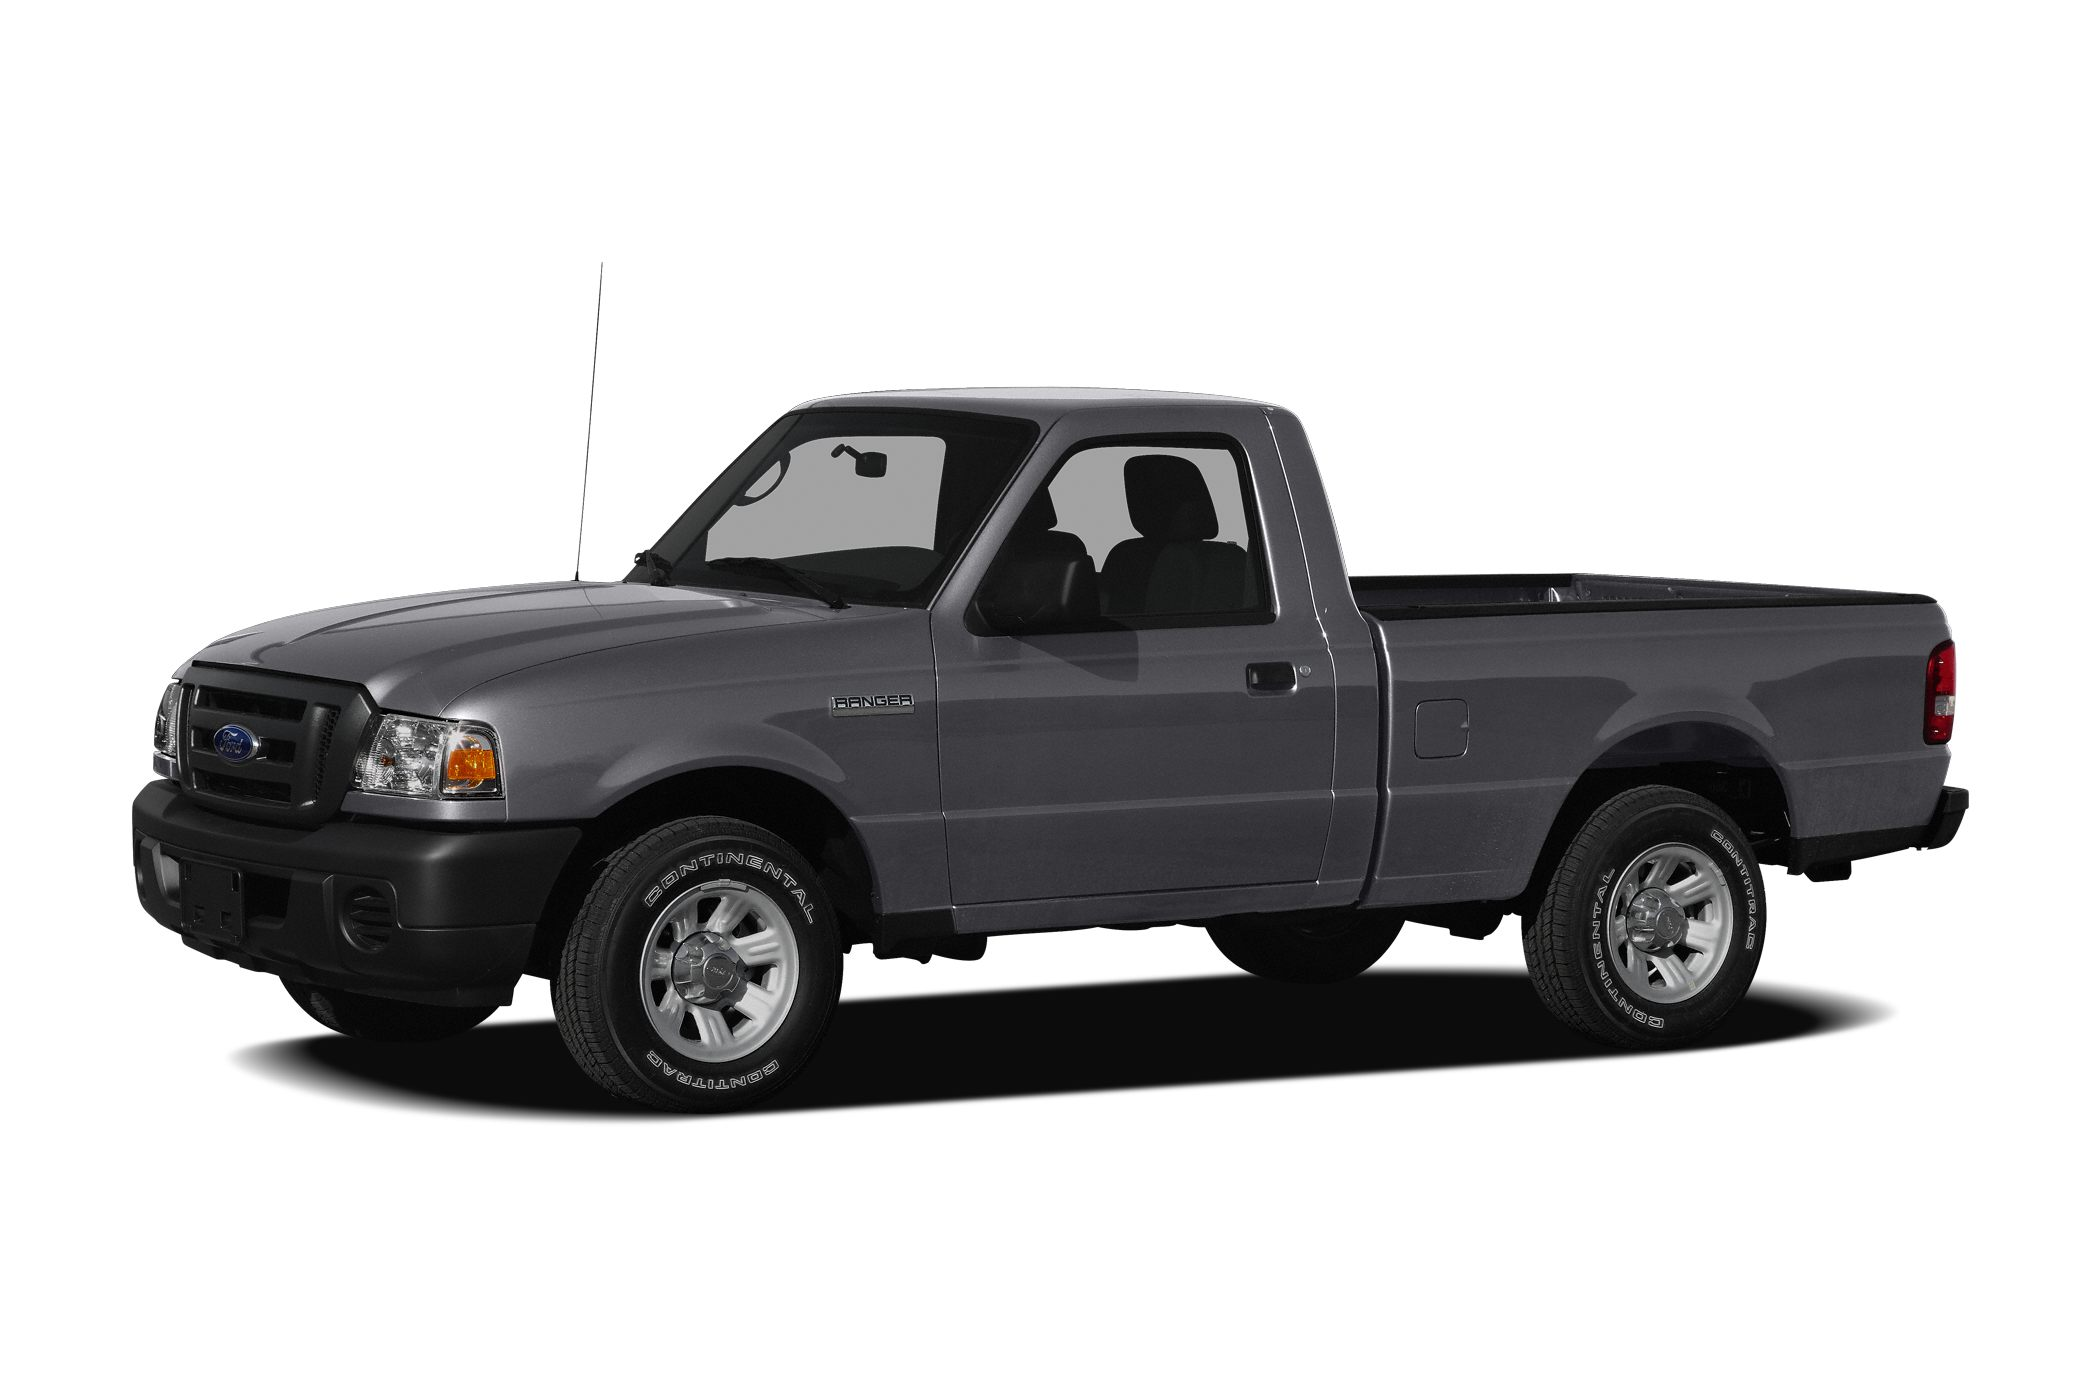 2009 Ford Ranger  At Mullinax there are NO DEALER FEES That SAVES you 800 over our largest compe